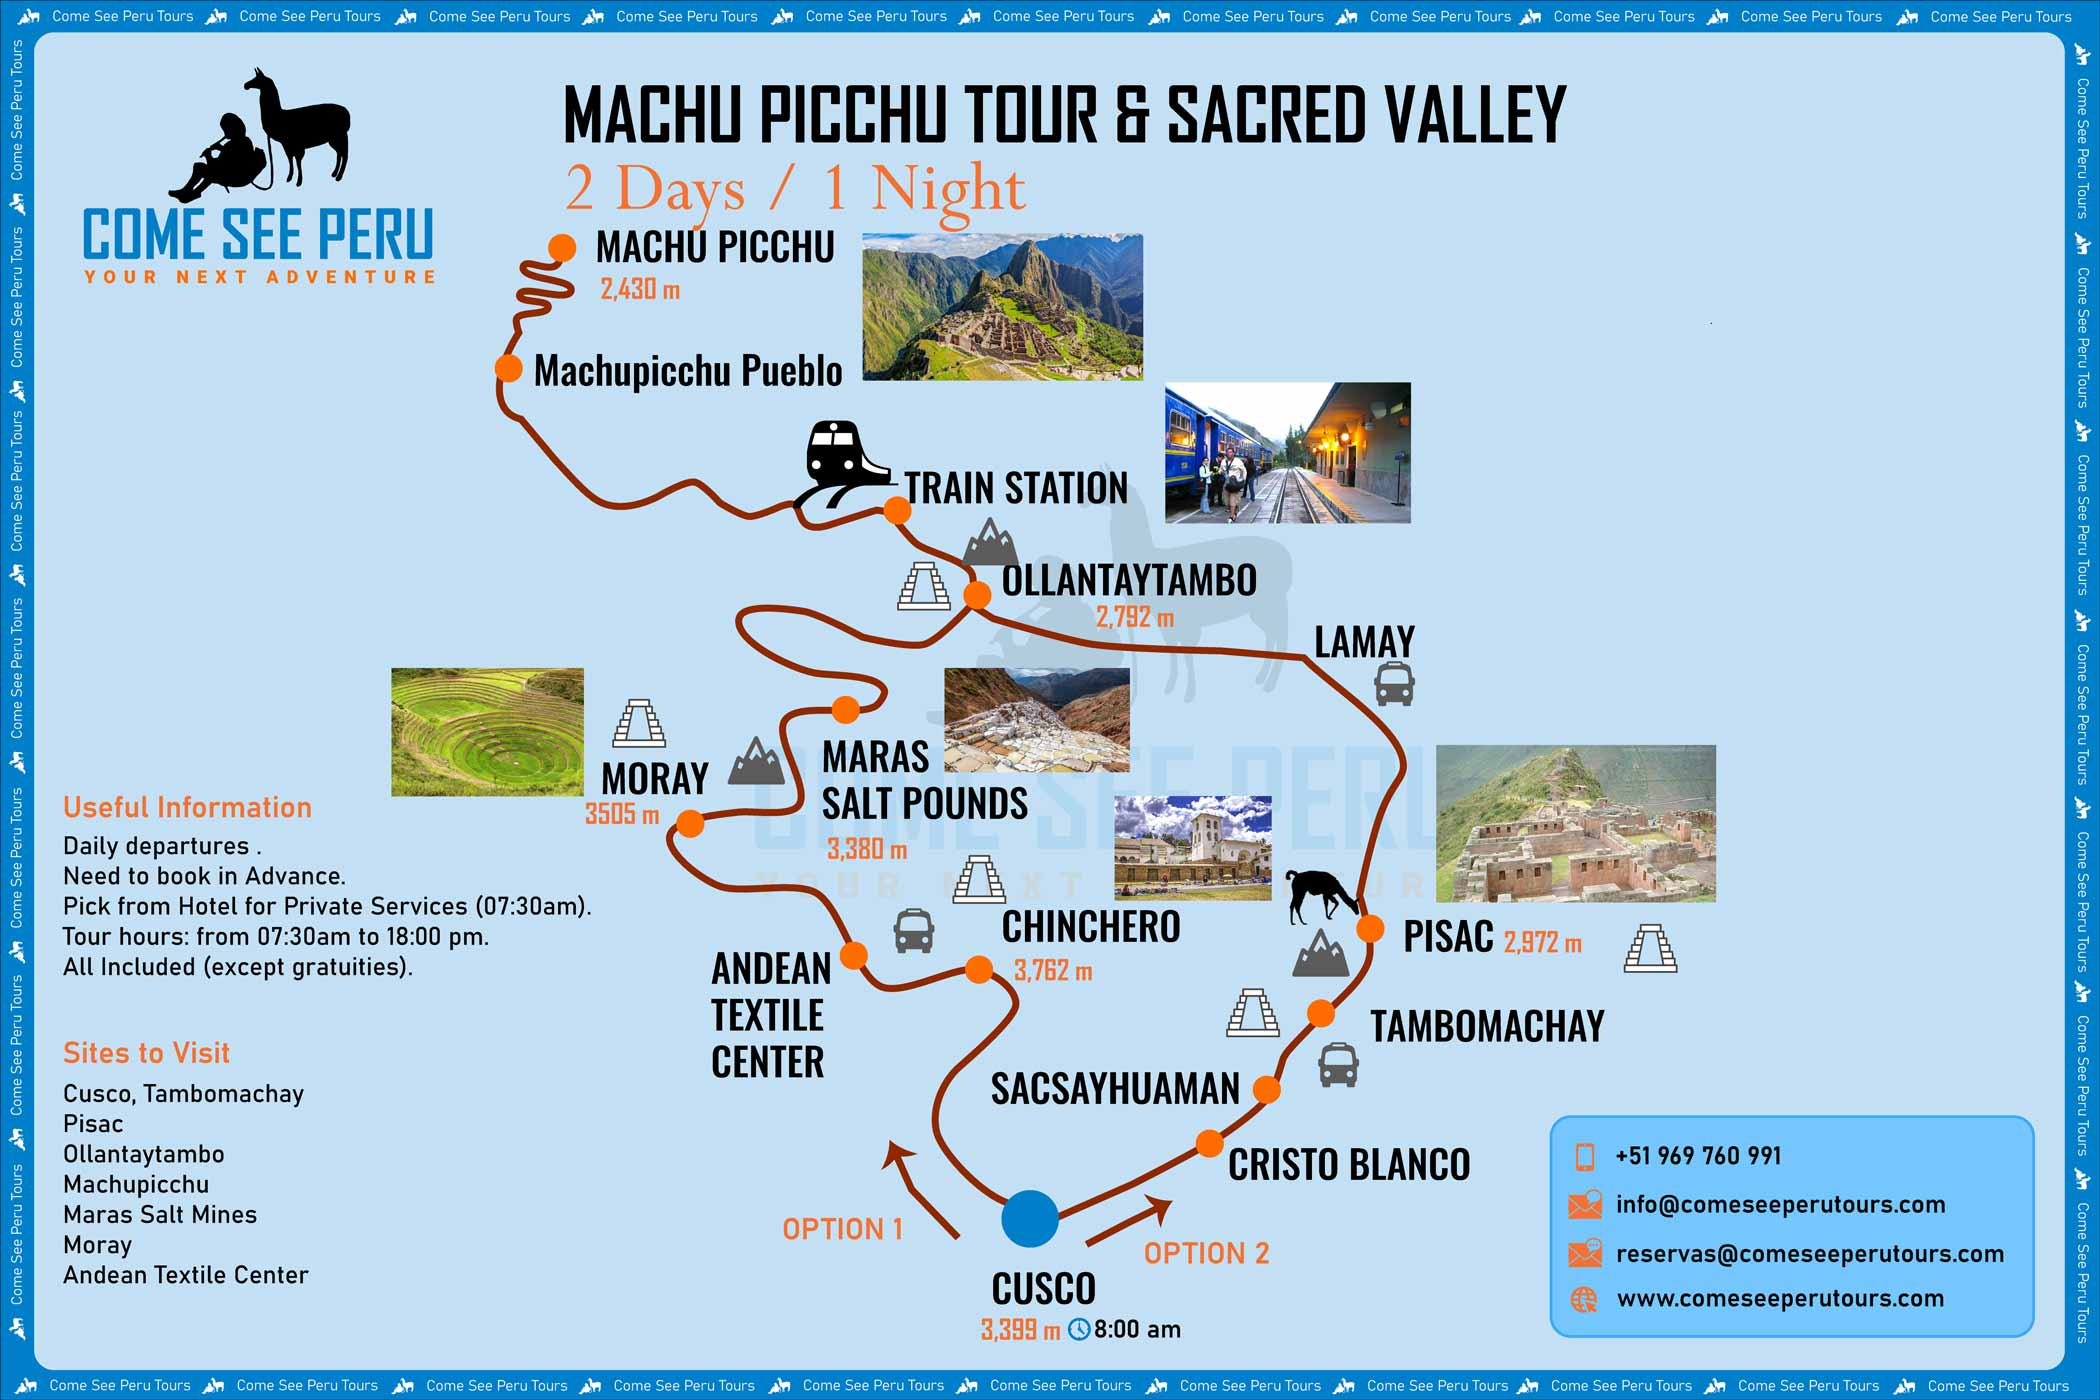 Sacred Valley And Machu Picchu Tour 2 Days From Cusco